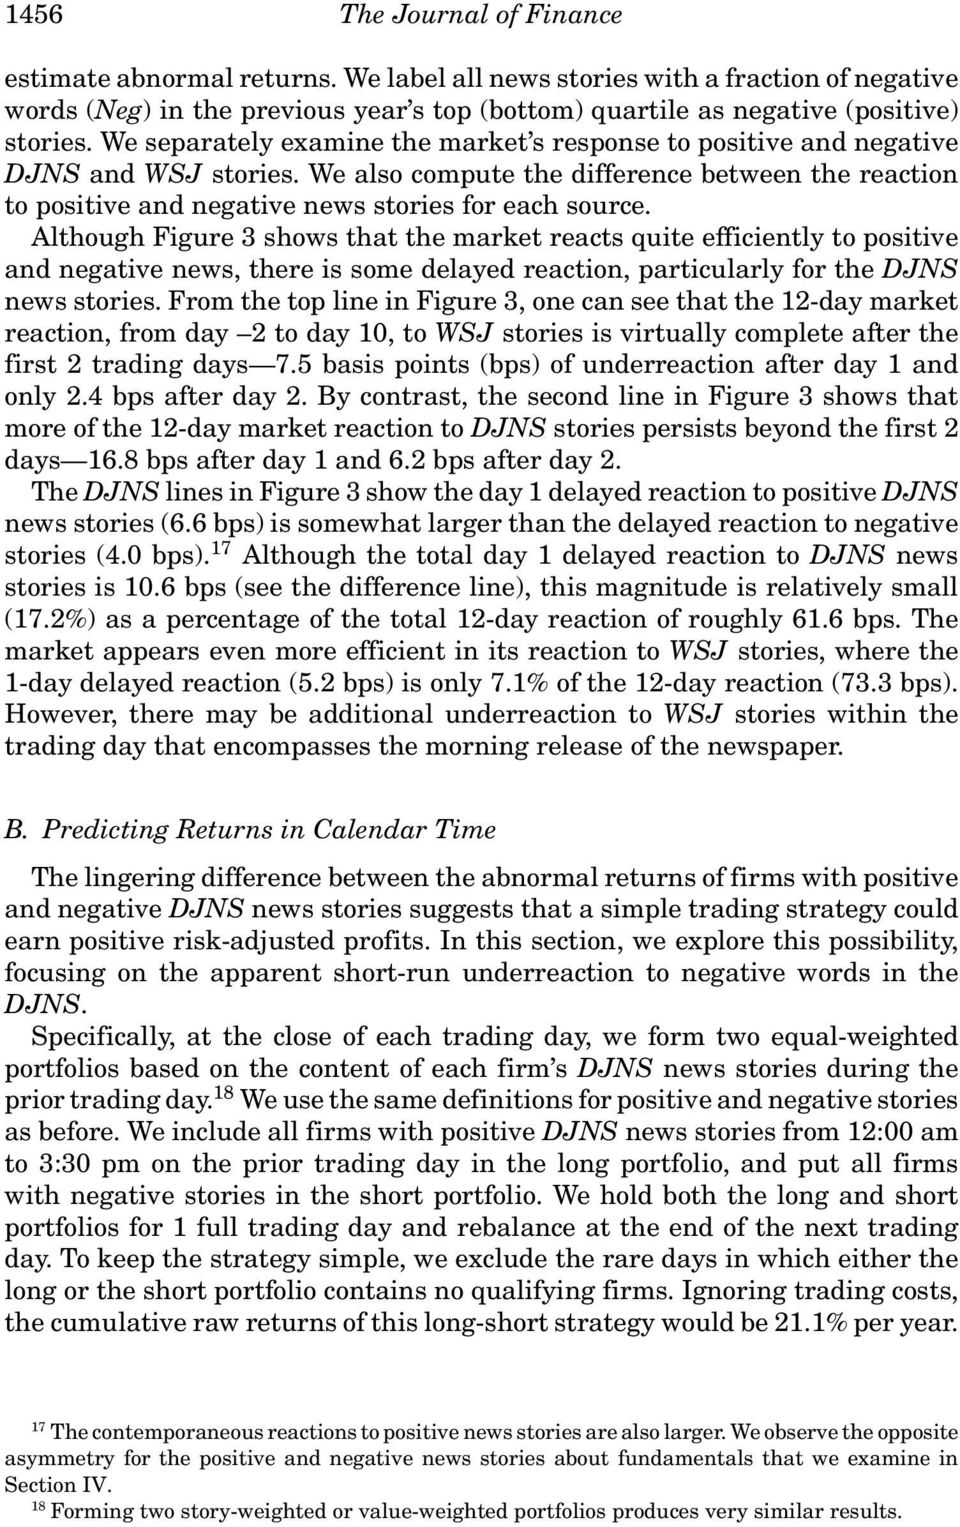 Although Figure 3 shows that the market reacts quite efficiently to positive and negative news, there is some delayed reaction, particularly for the DJNS news stories.